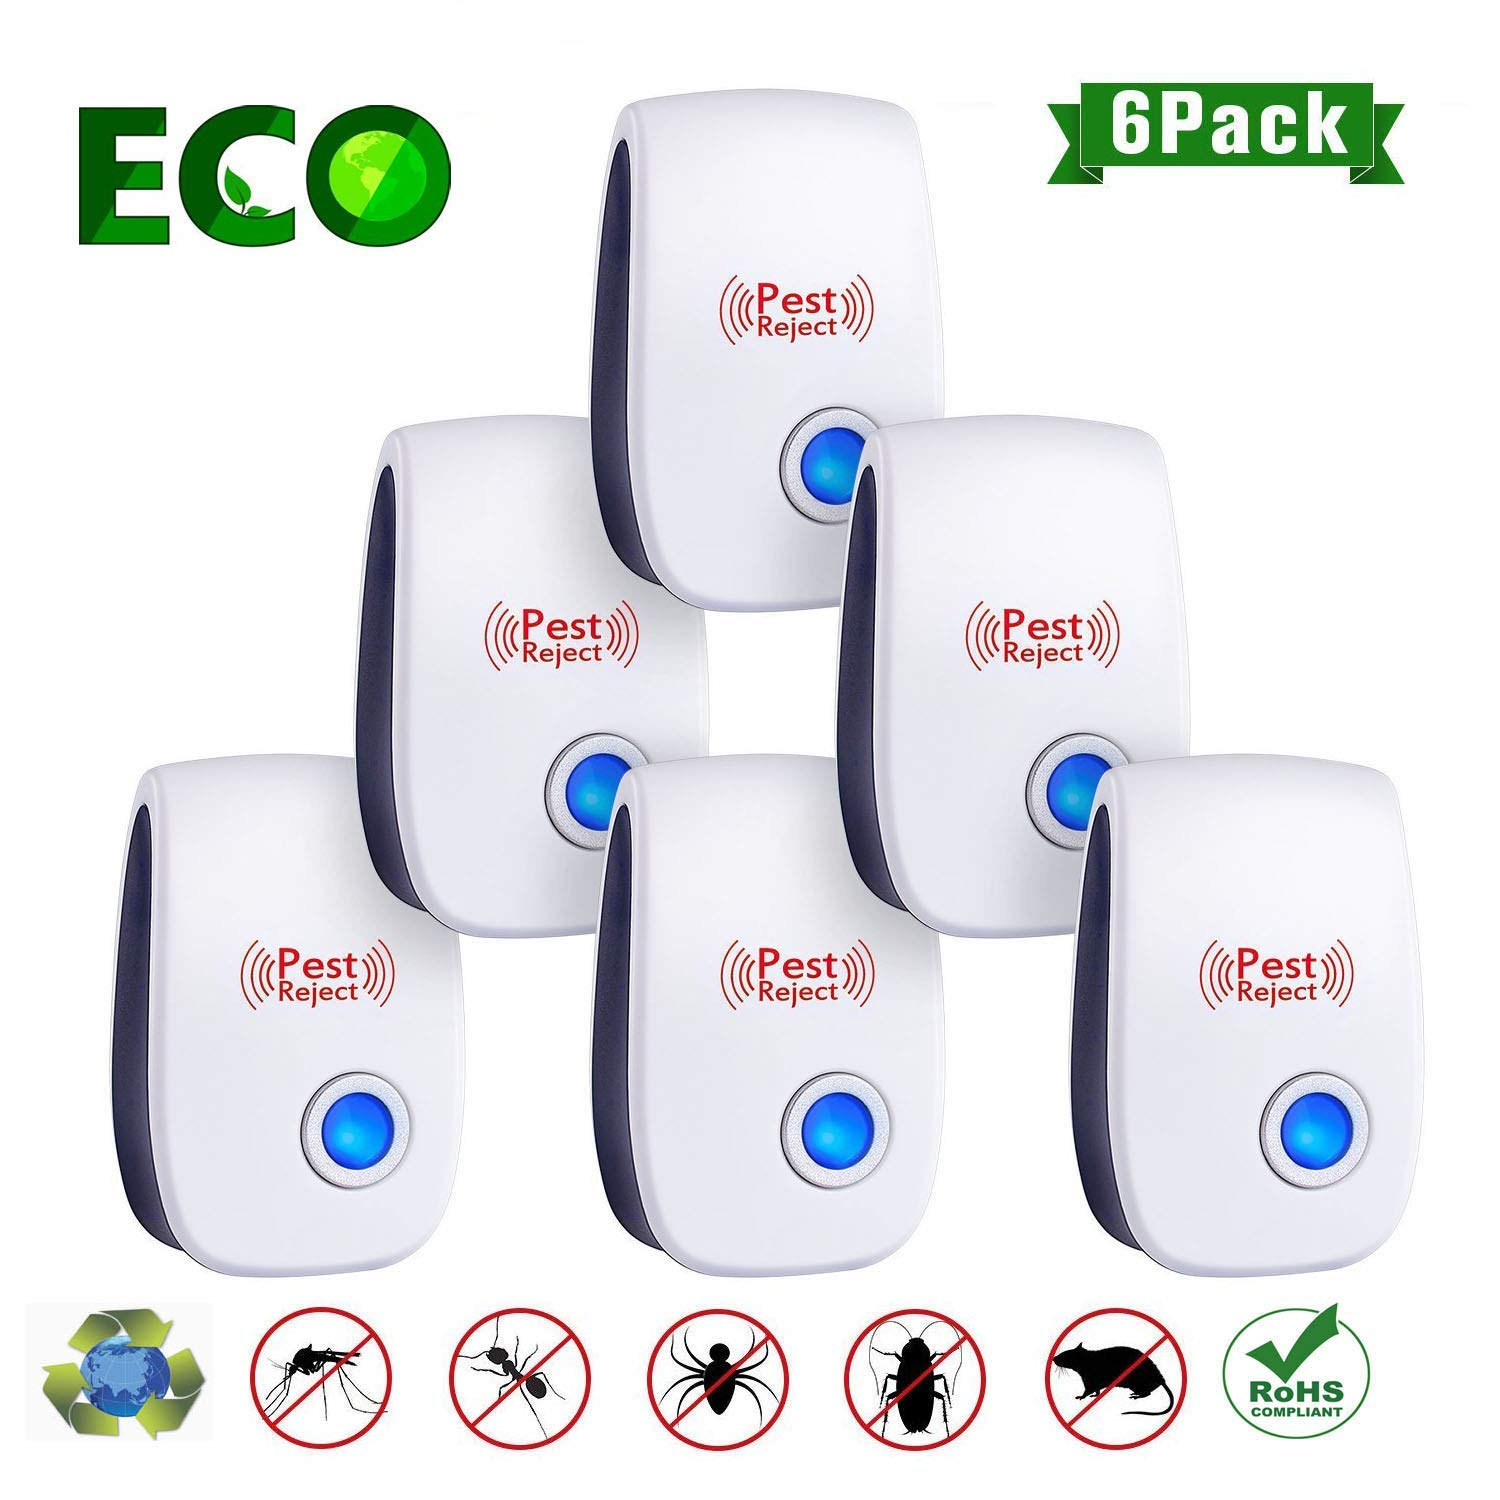 WEII Mosquito Ultrasonic Pest Repeller 2019 - Ultrasonic Pest Repellent Pest Control Professional Plug in Electronic Repel (6 Pack) - Repels Ants, Fleas, Rats, Rodents, Roaches, Fruit Flies.etc by WEII